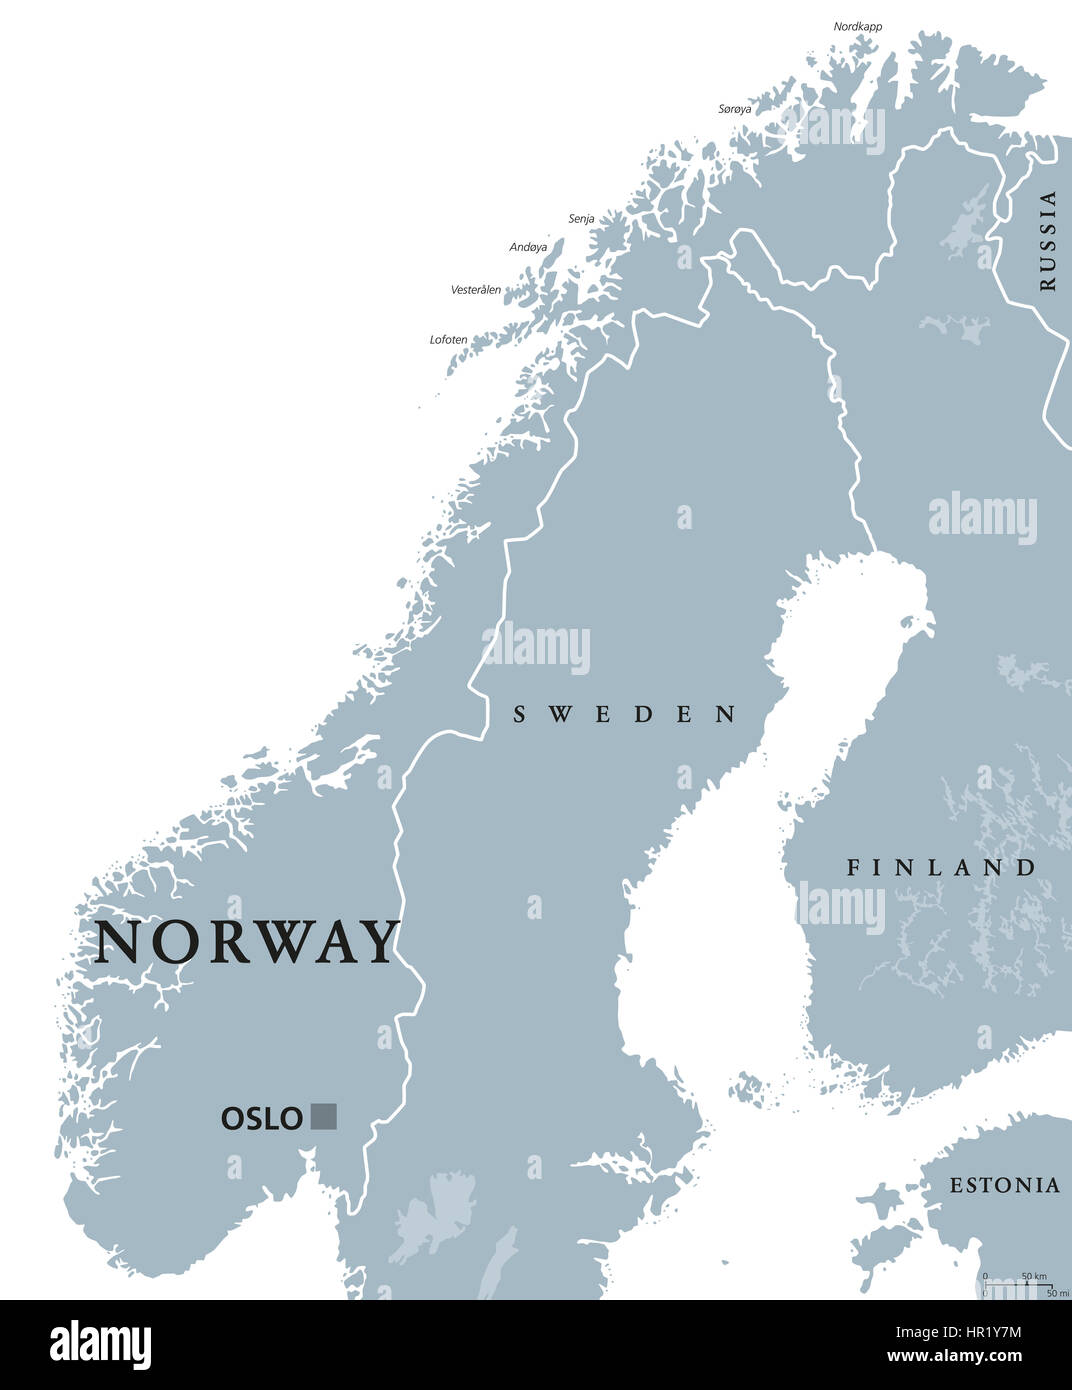 Norway political map with capital Oslo, national borders and ... on map canada, map of asia without labels, us map without labels, map no letters, map italy, map senegal,